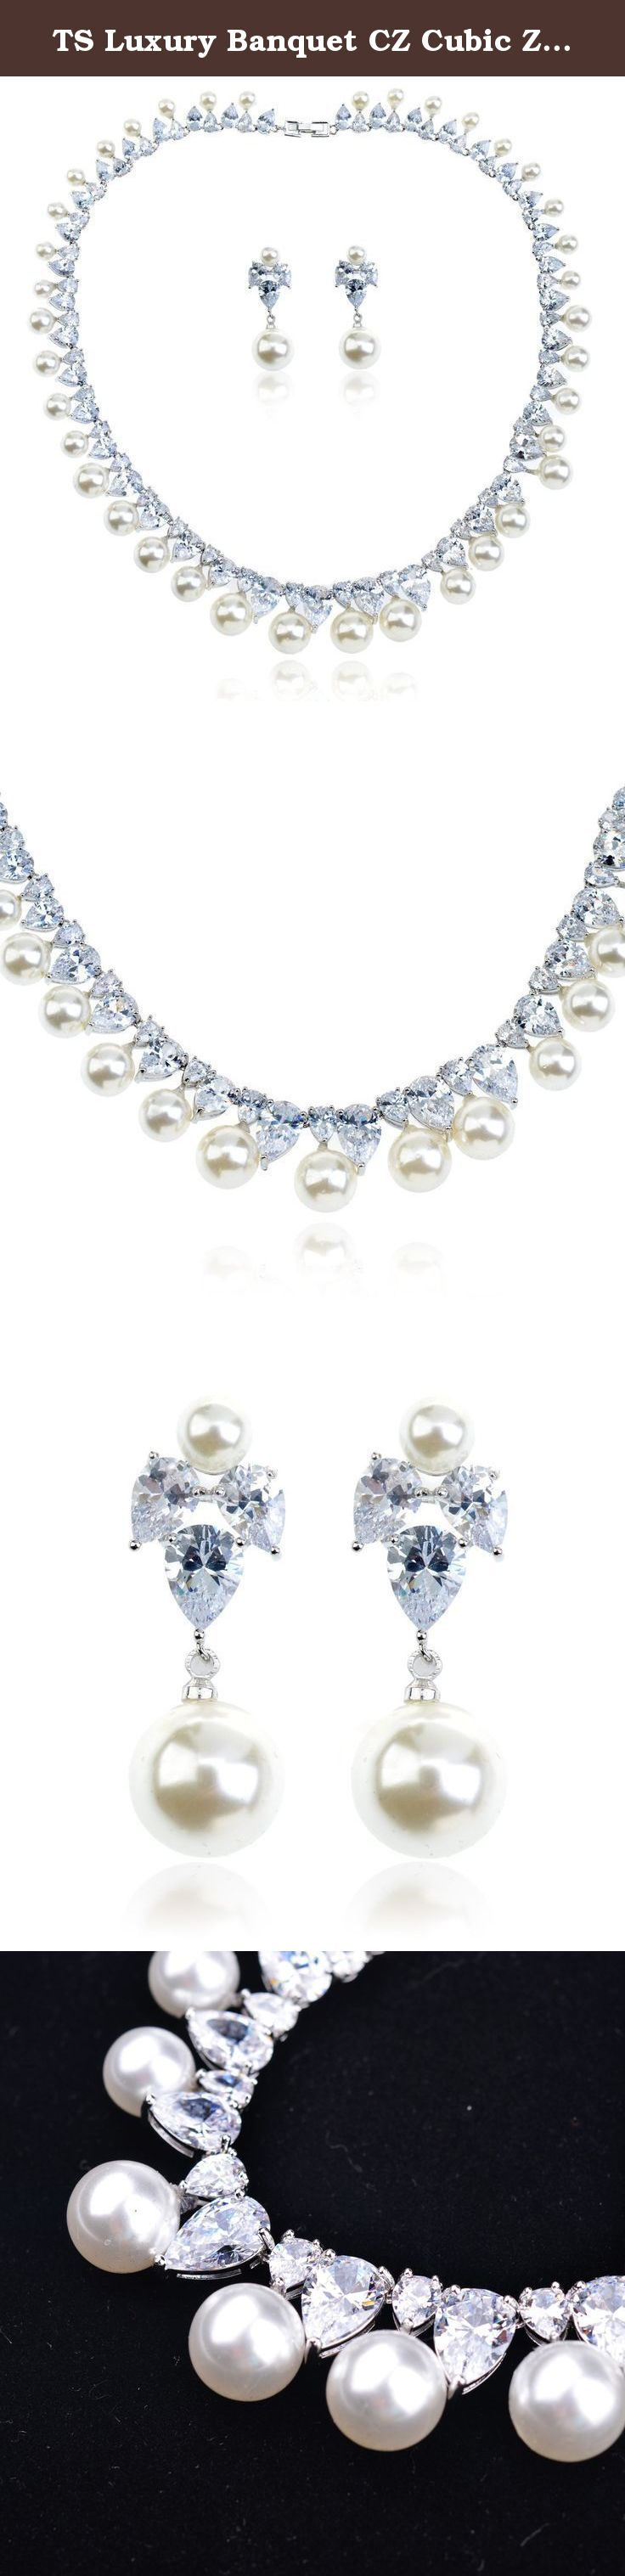 TS Luxury Banquet CZ Cubic Zirconia Cultured Pearl Jewelry Set Necklace Earrings Jewelry Wedding Set. Welcome to Ts TS is a professional store on Amazon specialized in Jewelry,Accessories,Leggings and etc. TS strive to provide you the Top quality with reasonable price. What makes you beautiful? Your self confidence & TS What makes gift perfect? Your cares & TS TS Accessory Looking for a versatile accessory? It's hard to beat our high quality zircon choker necklaces! 100% brand new with…